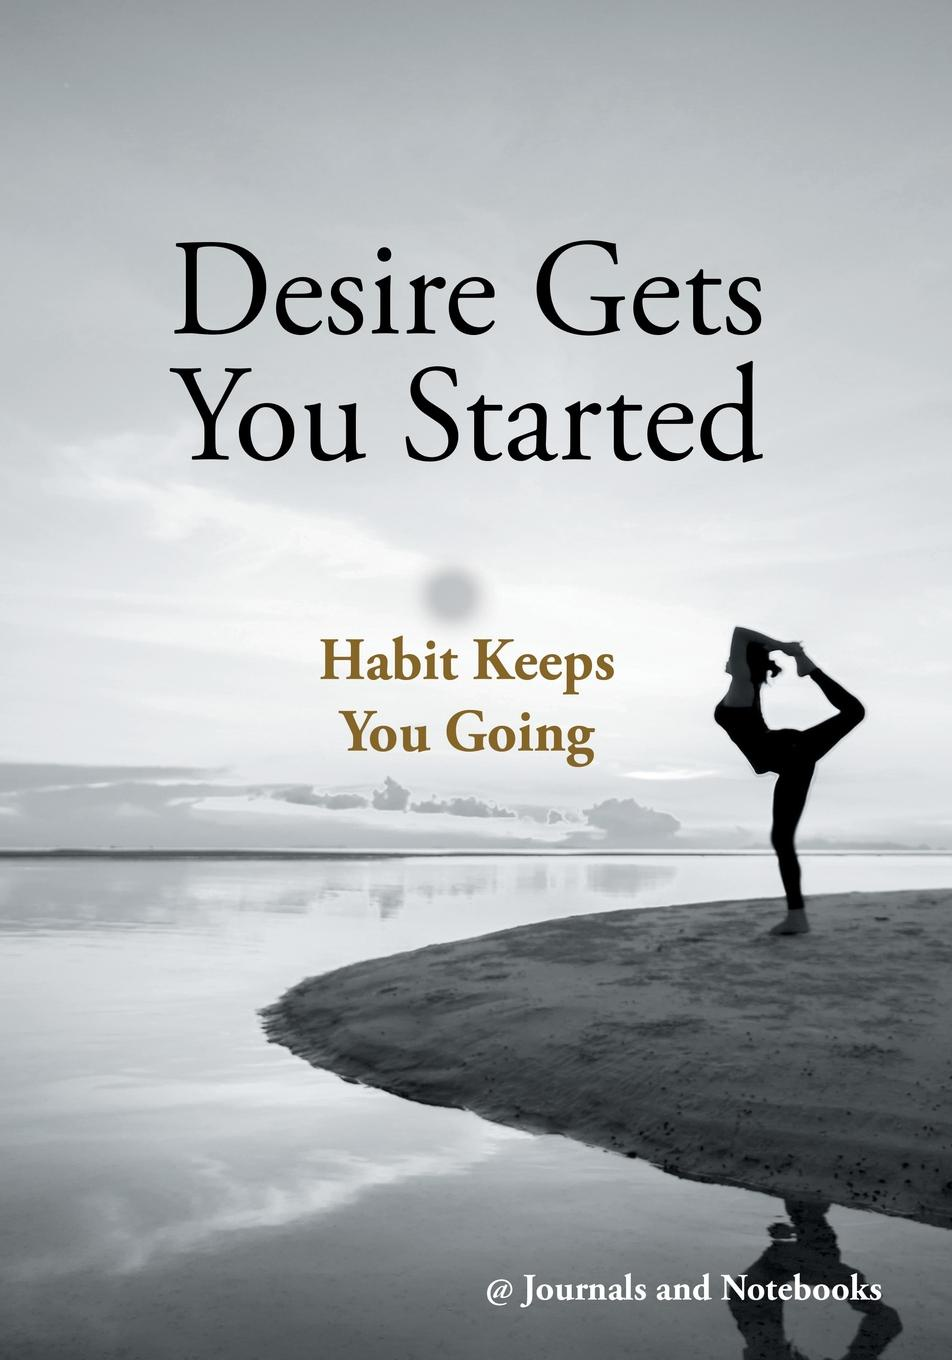 Фото - @ Journals and Notebooks Desire Gets You Started; Habit Keeps You Going mark burrows so you want to start keeping chickens